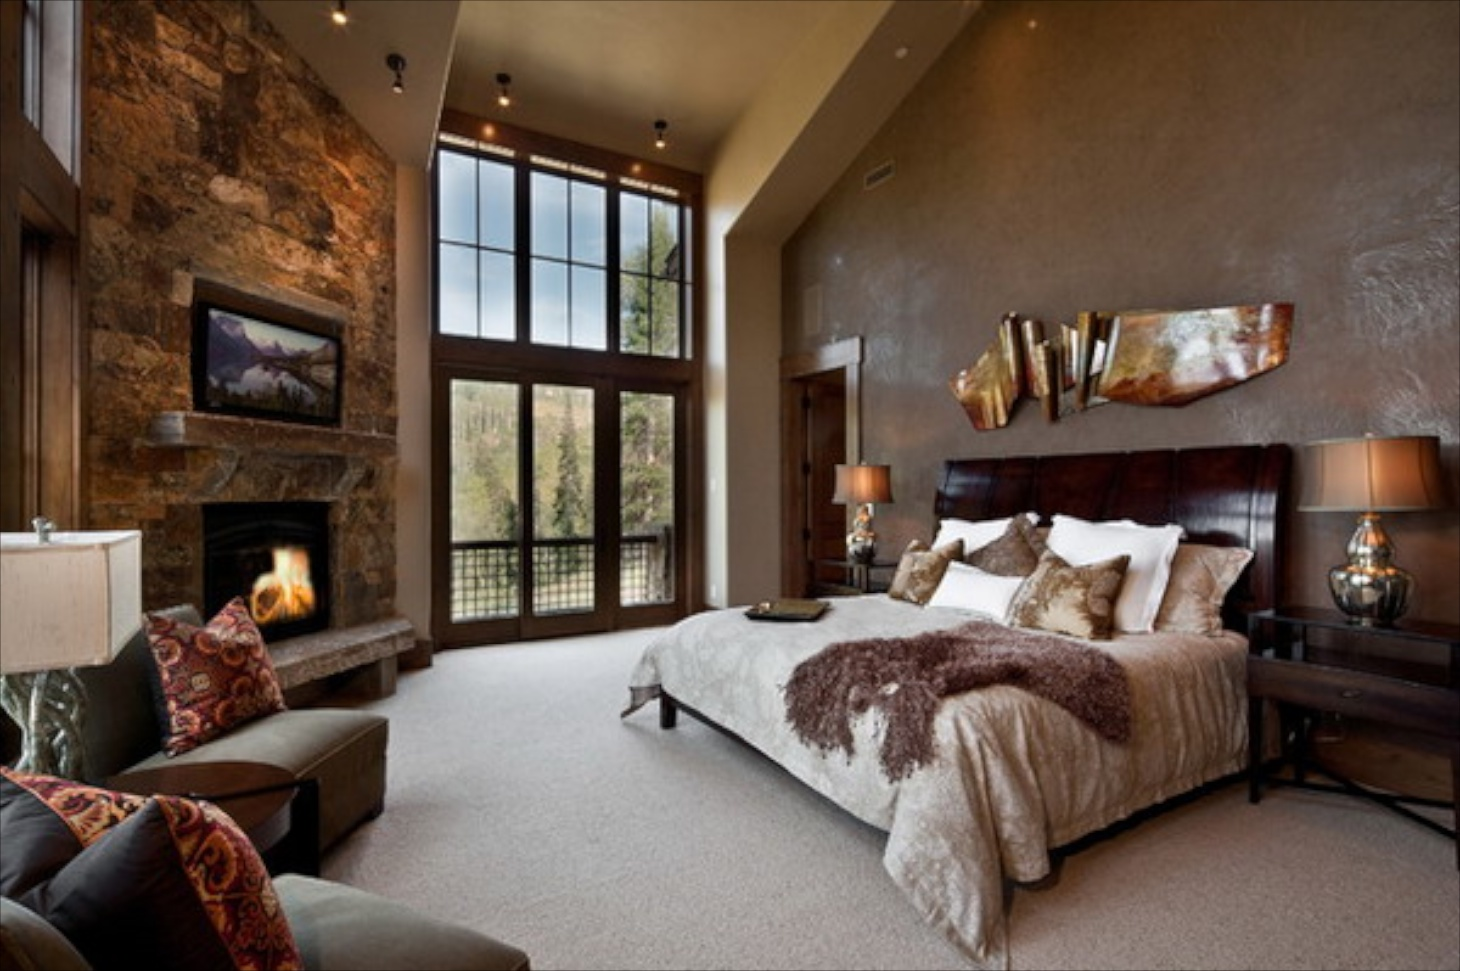 Decorating with stone inside the home for Rustic french bedroom